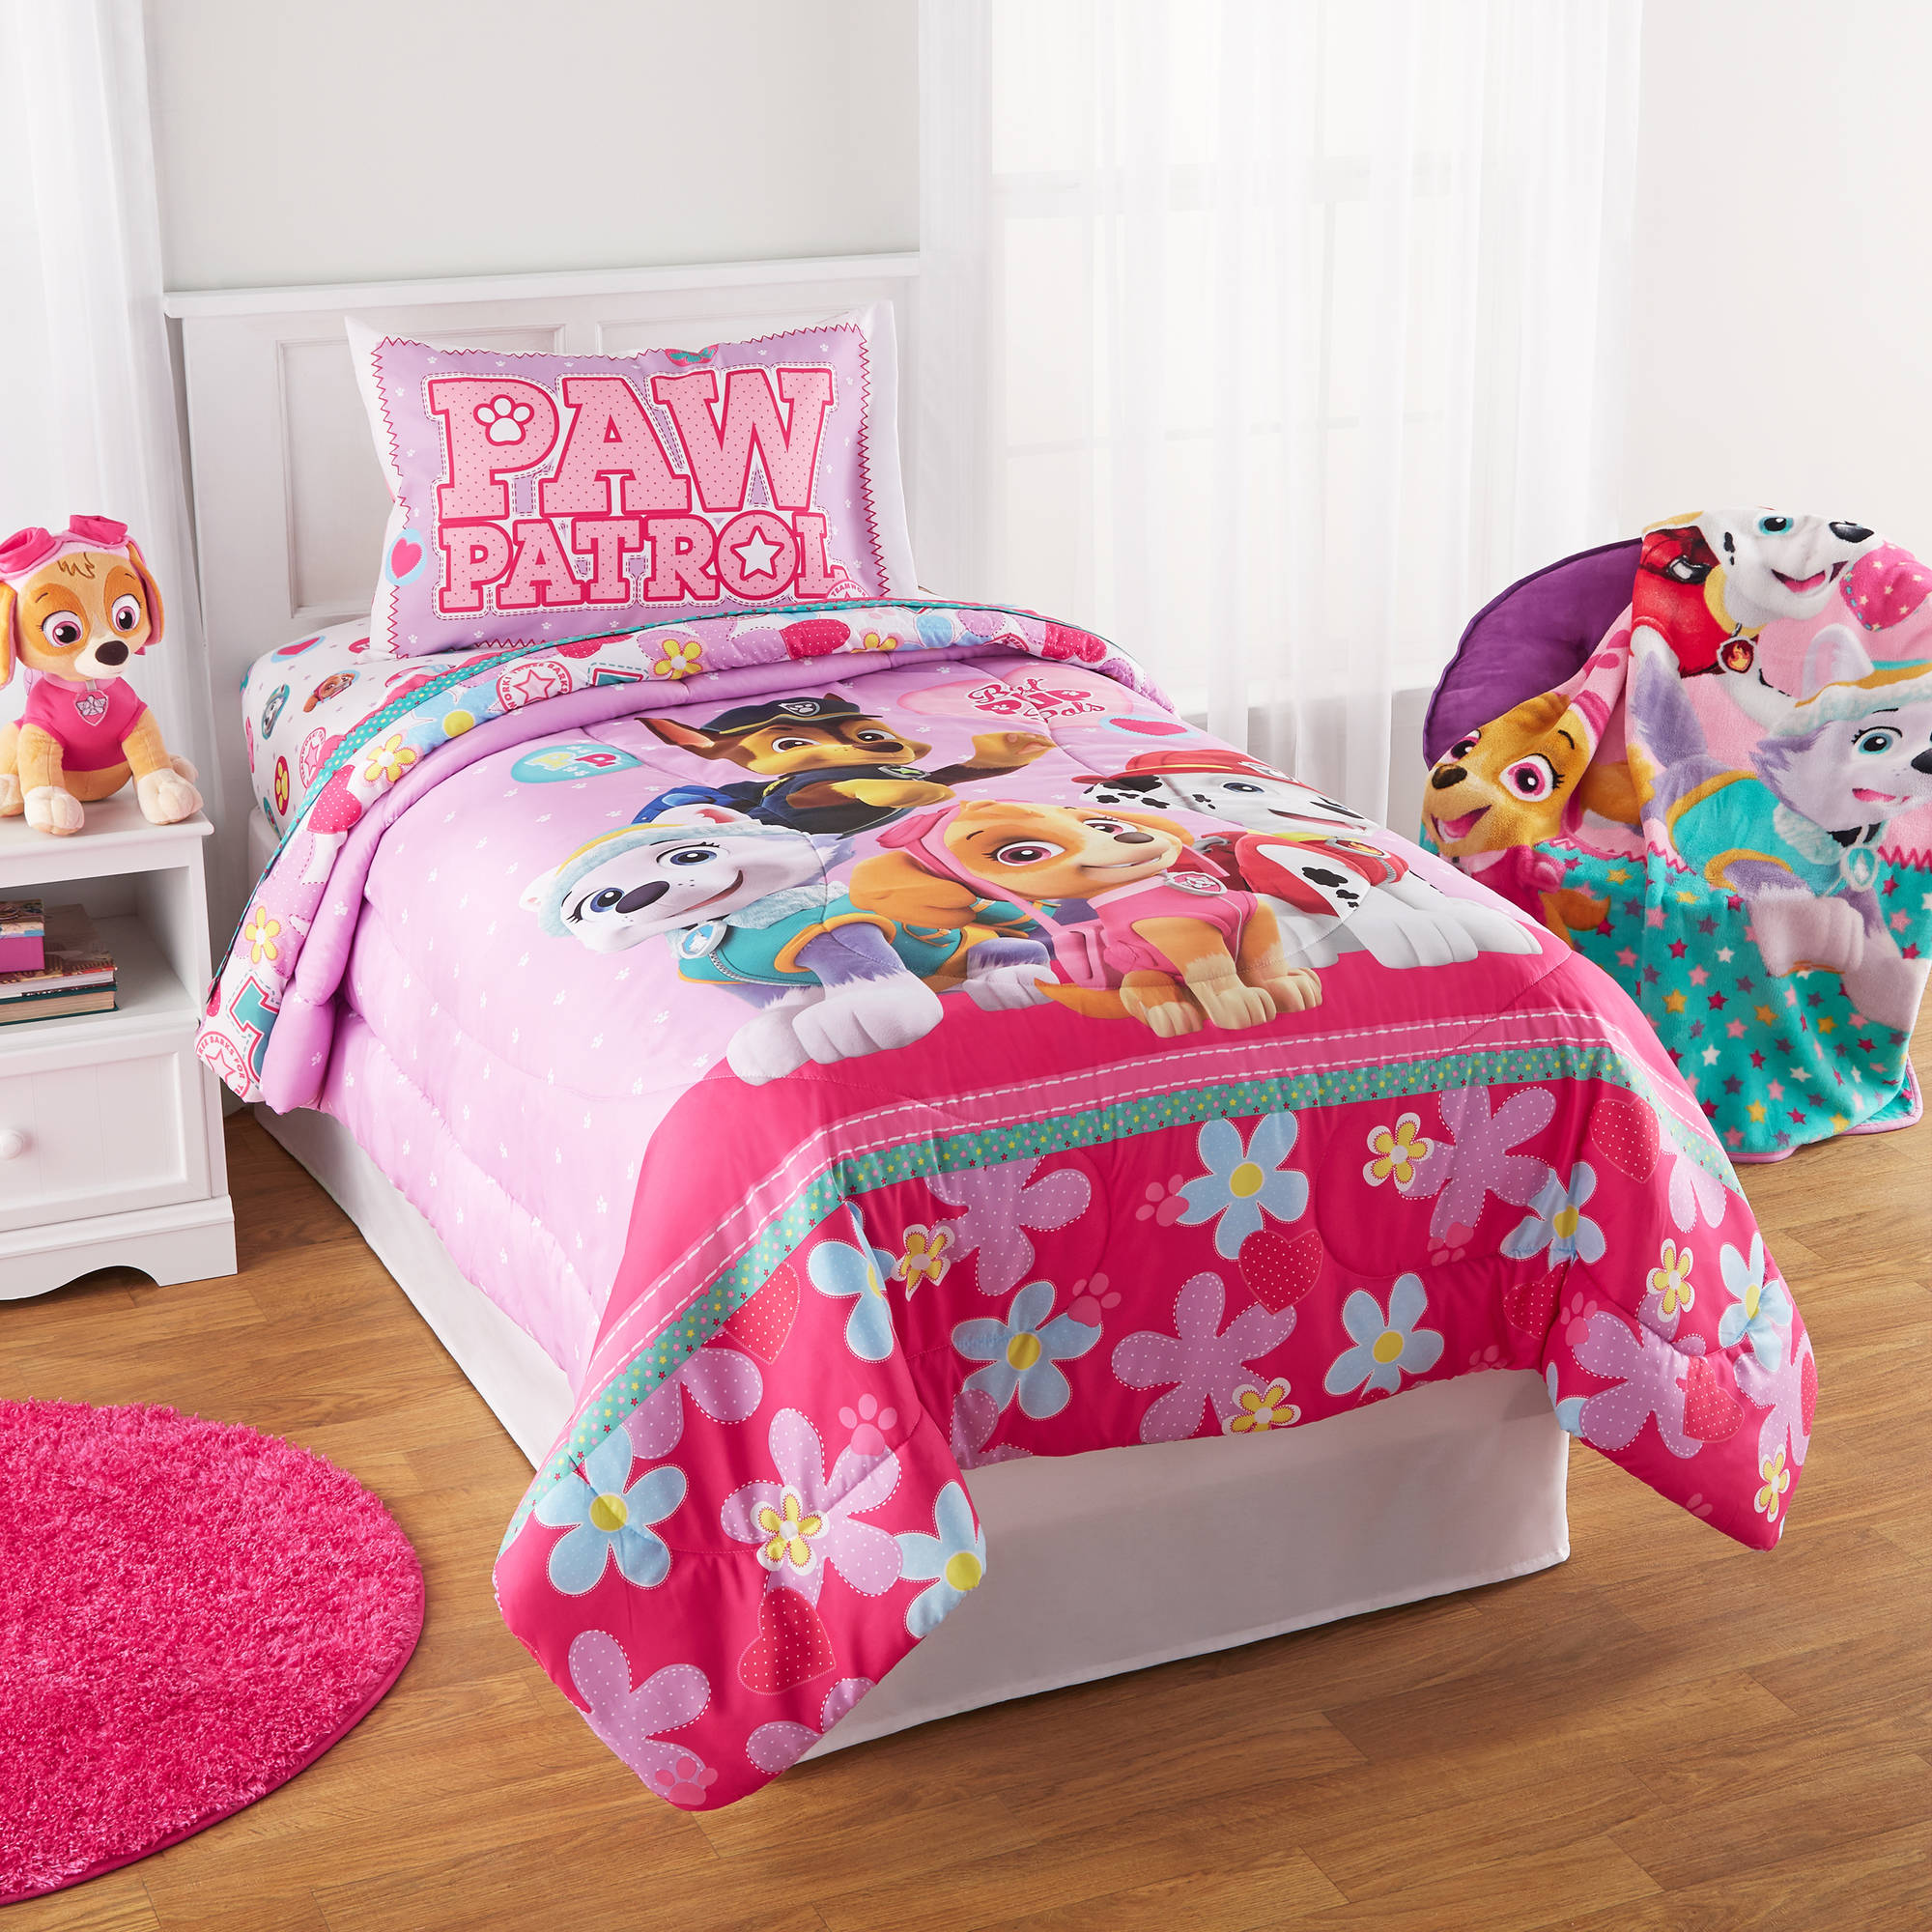 boys twin sets girls bed purple pottery little design girl bedding boy for set canada outstandingurprising styles modern covers impressive size queen comforter kids toddler surprising pink quilts